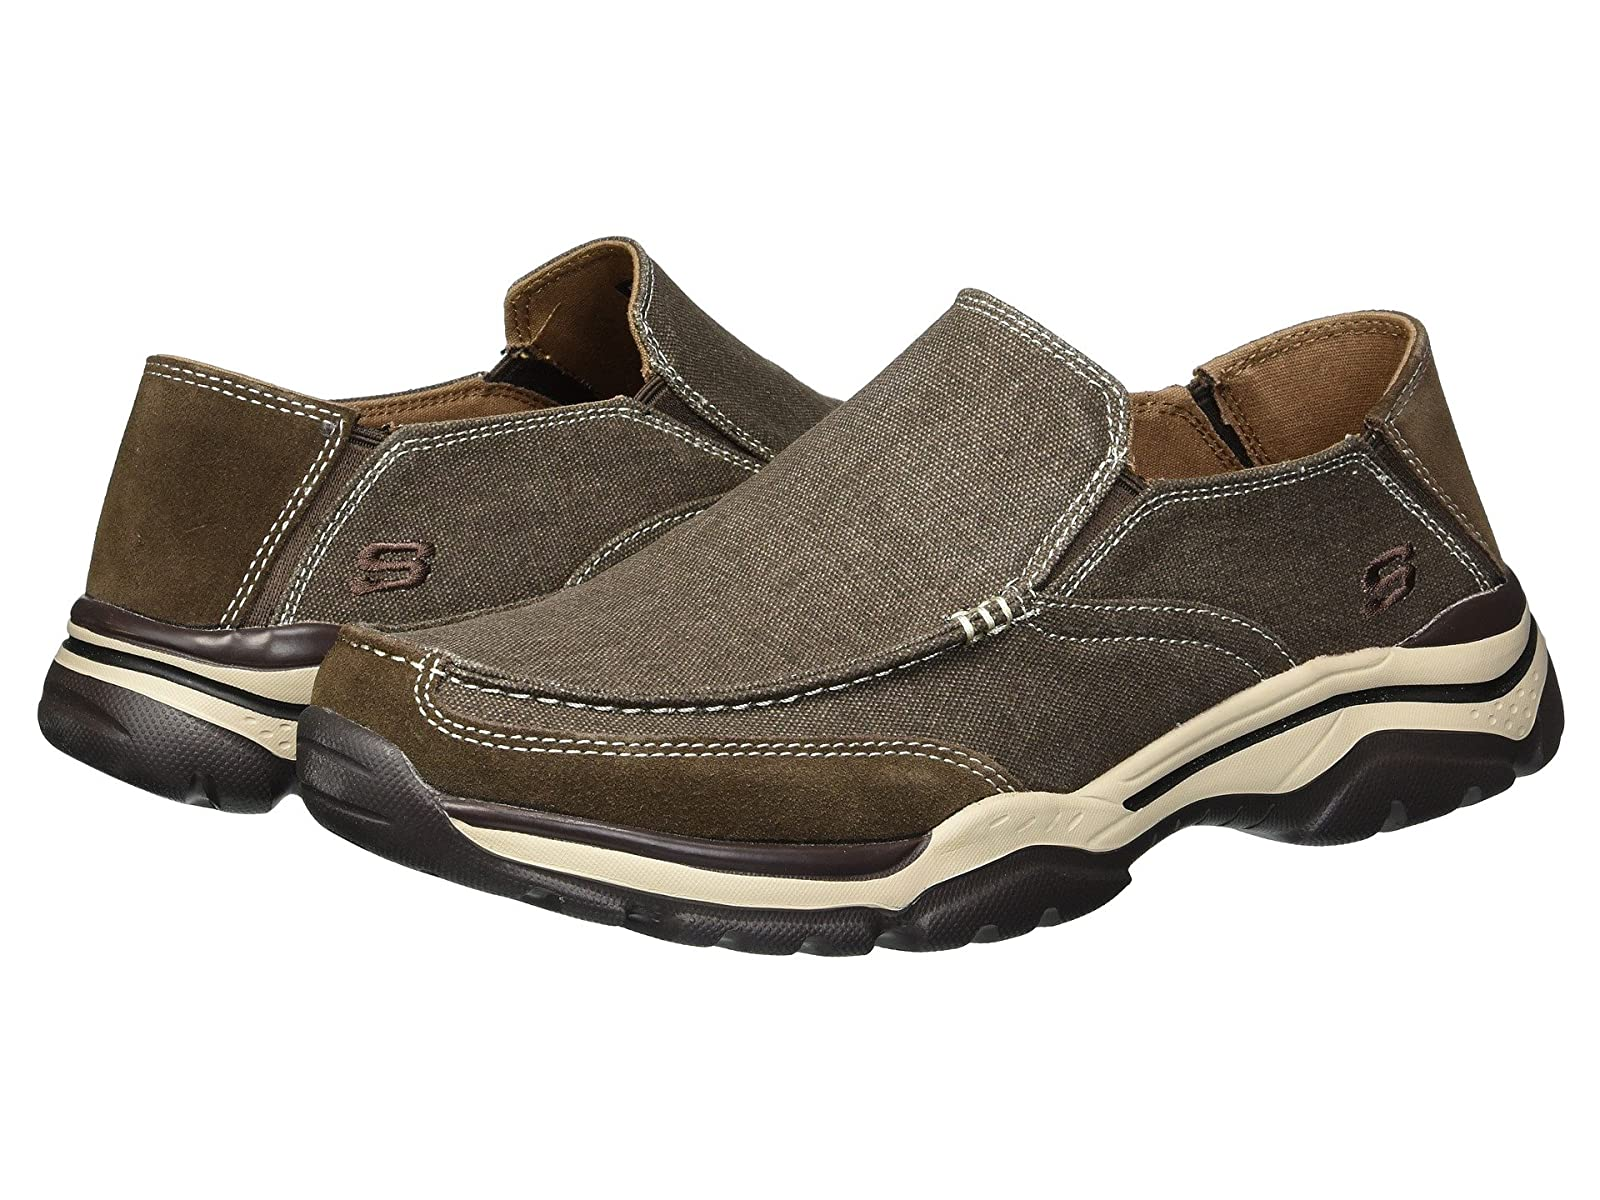 SKECHERS Relaxed Fit Rovato - VelenoCheap and distinctive eye-catching shoes